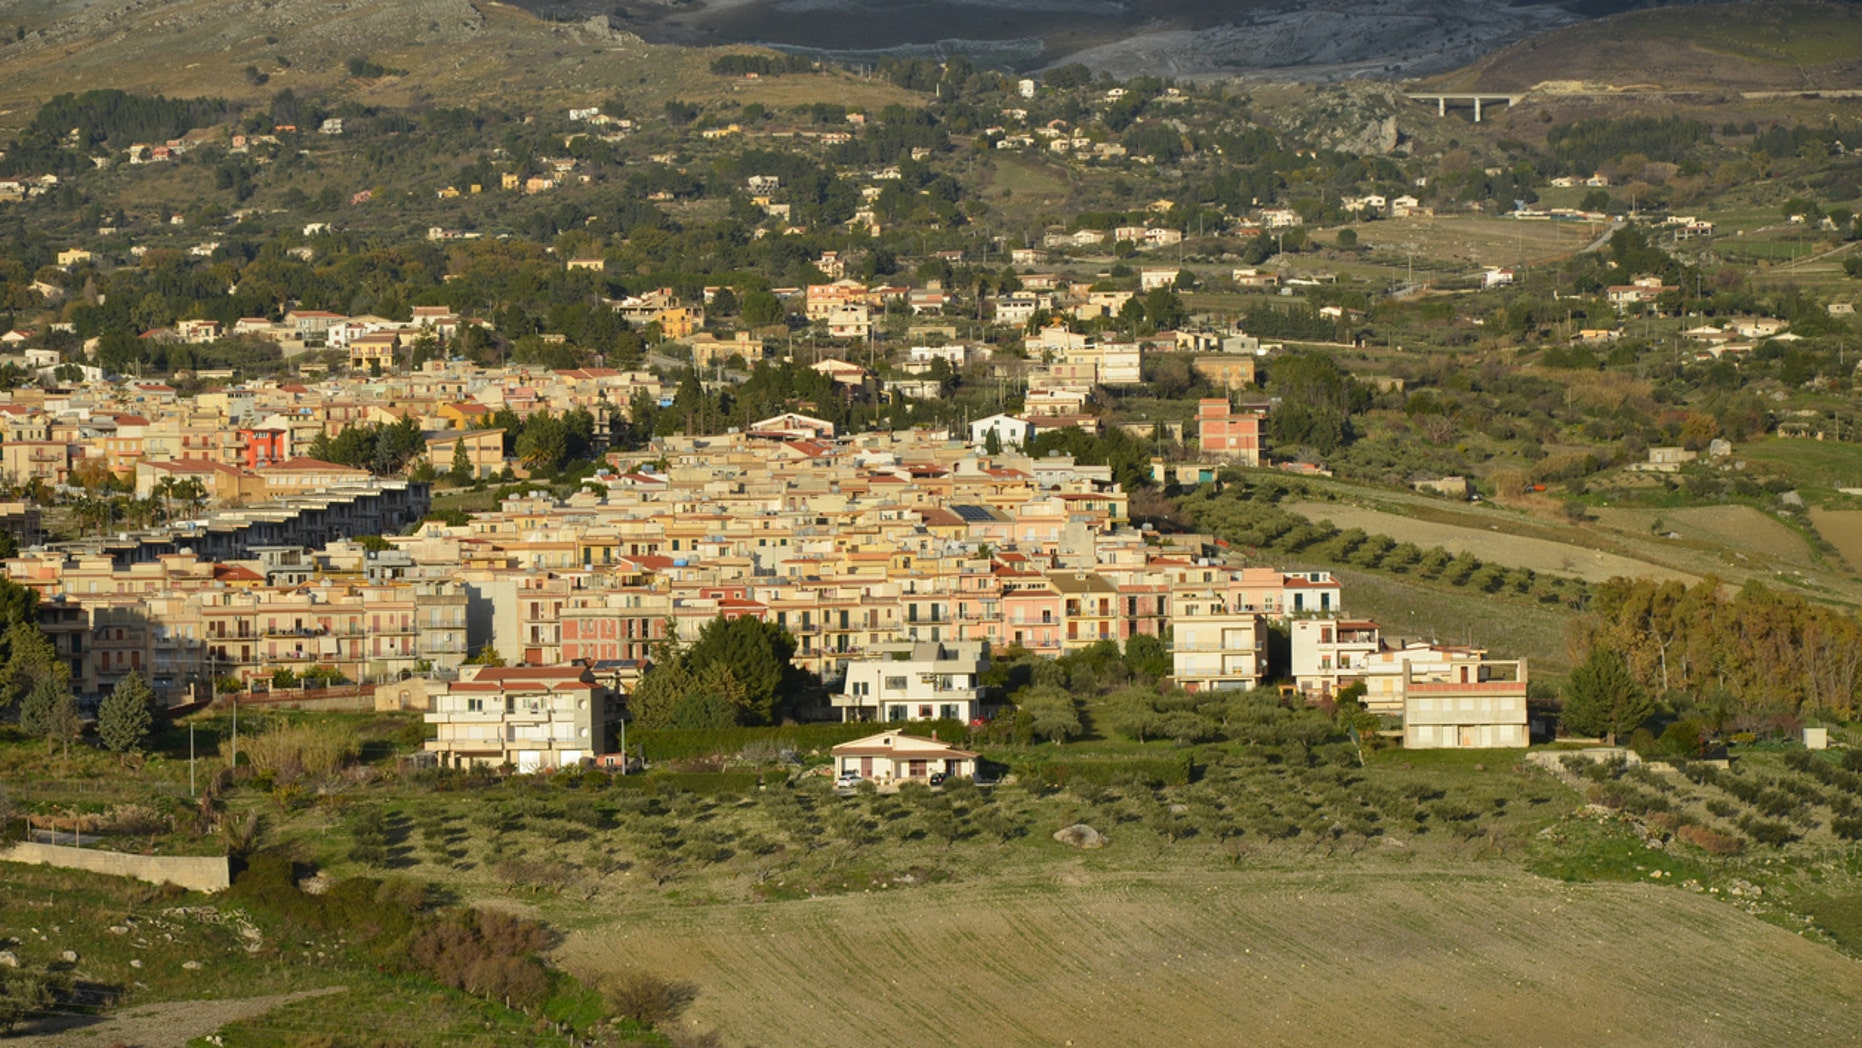 Local authorities on the island of Sicily in southern Italy have marketed dozens of houses on the hill